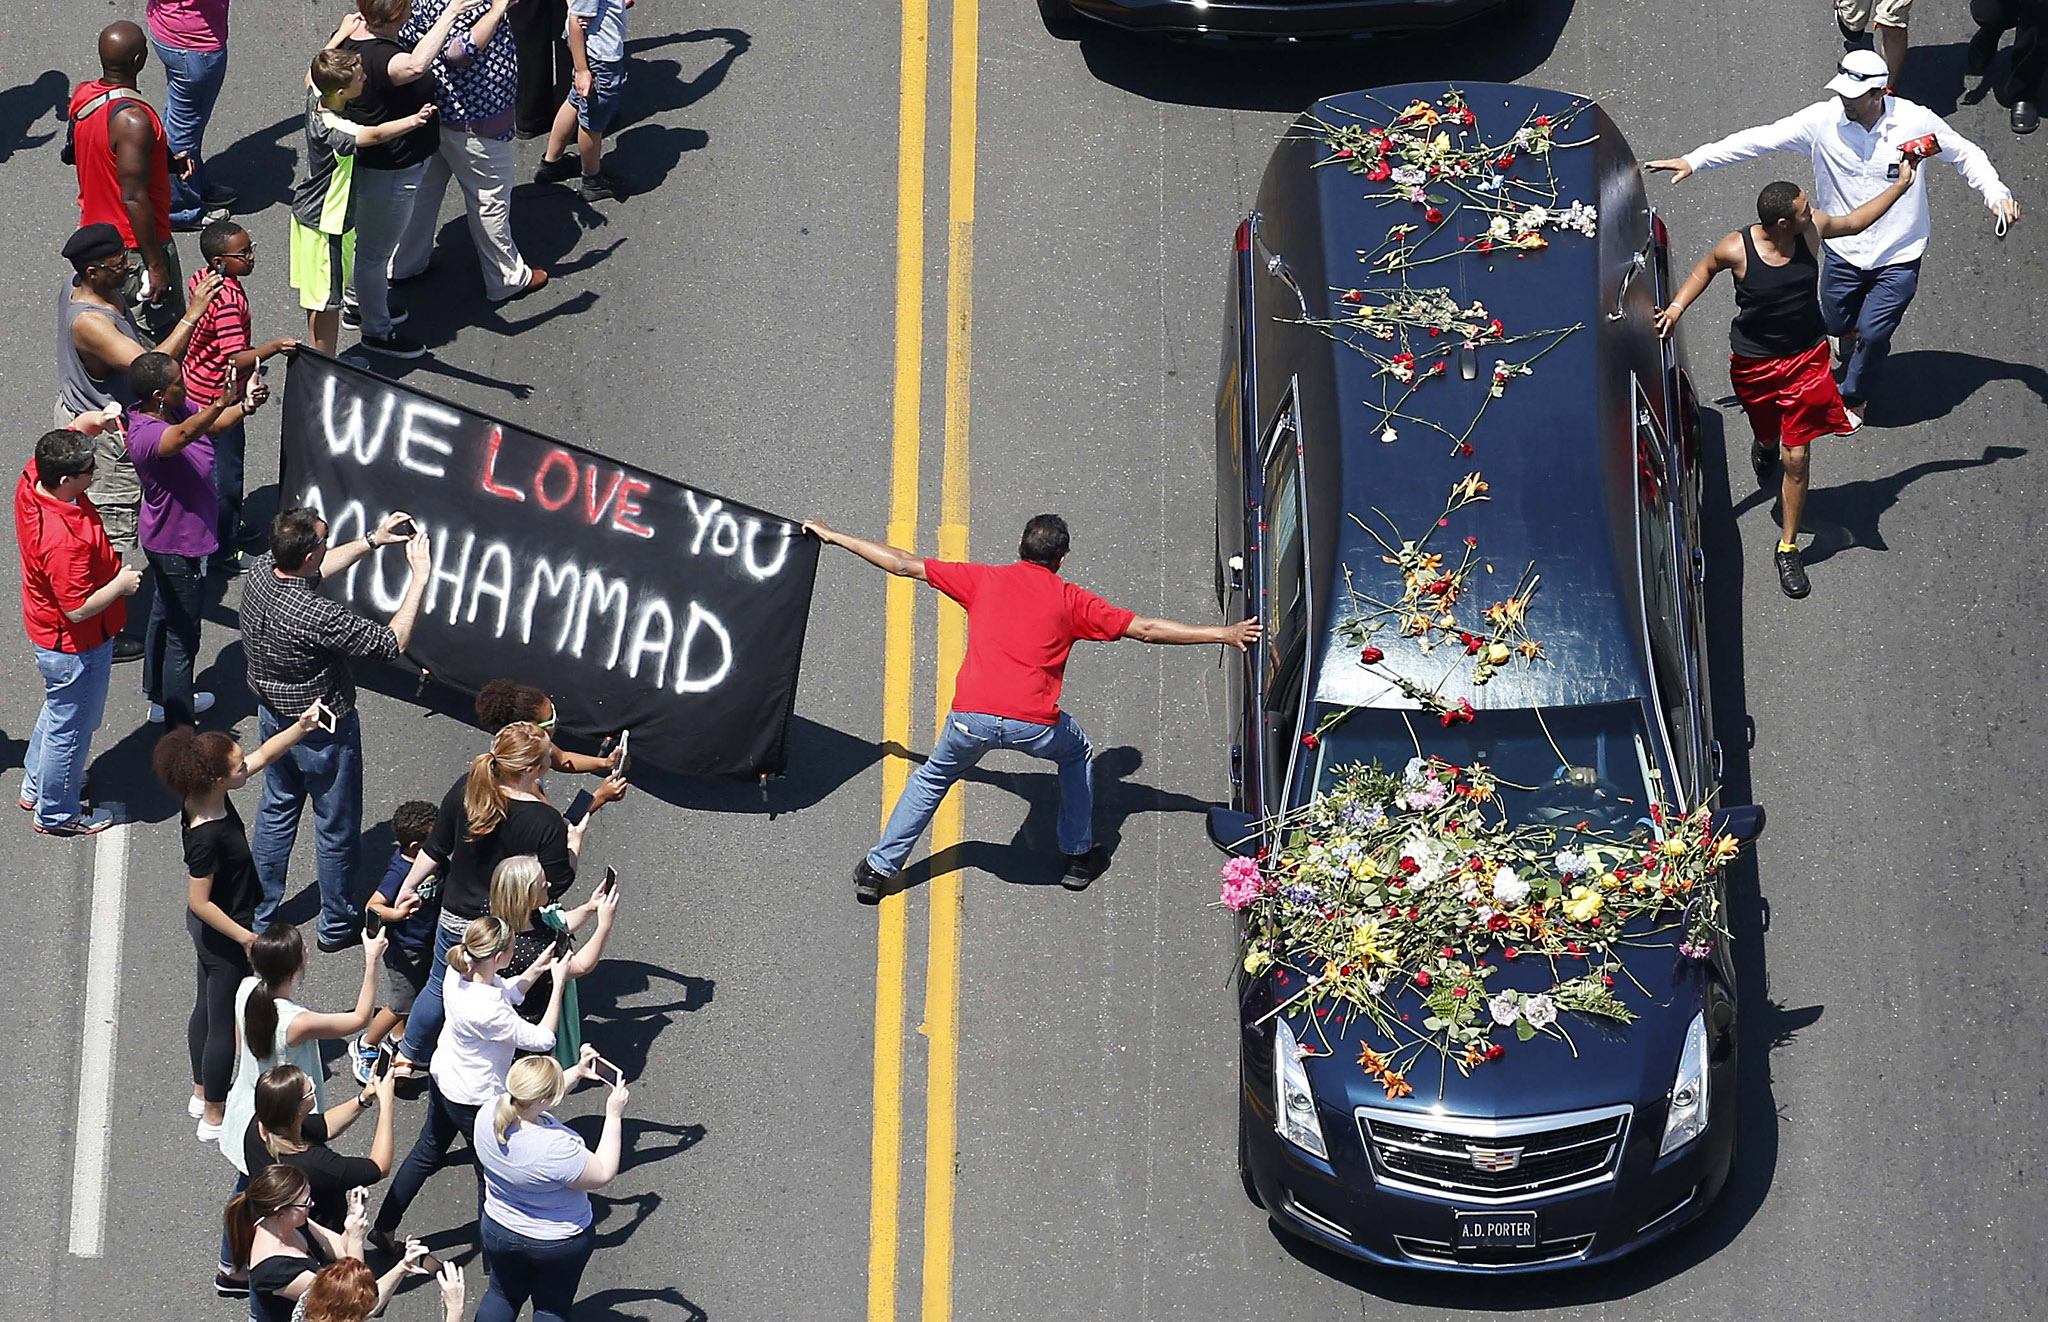 A well-wisher holding a banner touches the hearse carrying the remains of Muhammad Ali during the funeral procession for the three-time heavyweight boxing champion in Louisville, Kentucky, U.S., June 10, 2016.   REUTERS/Adrees Latif